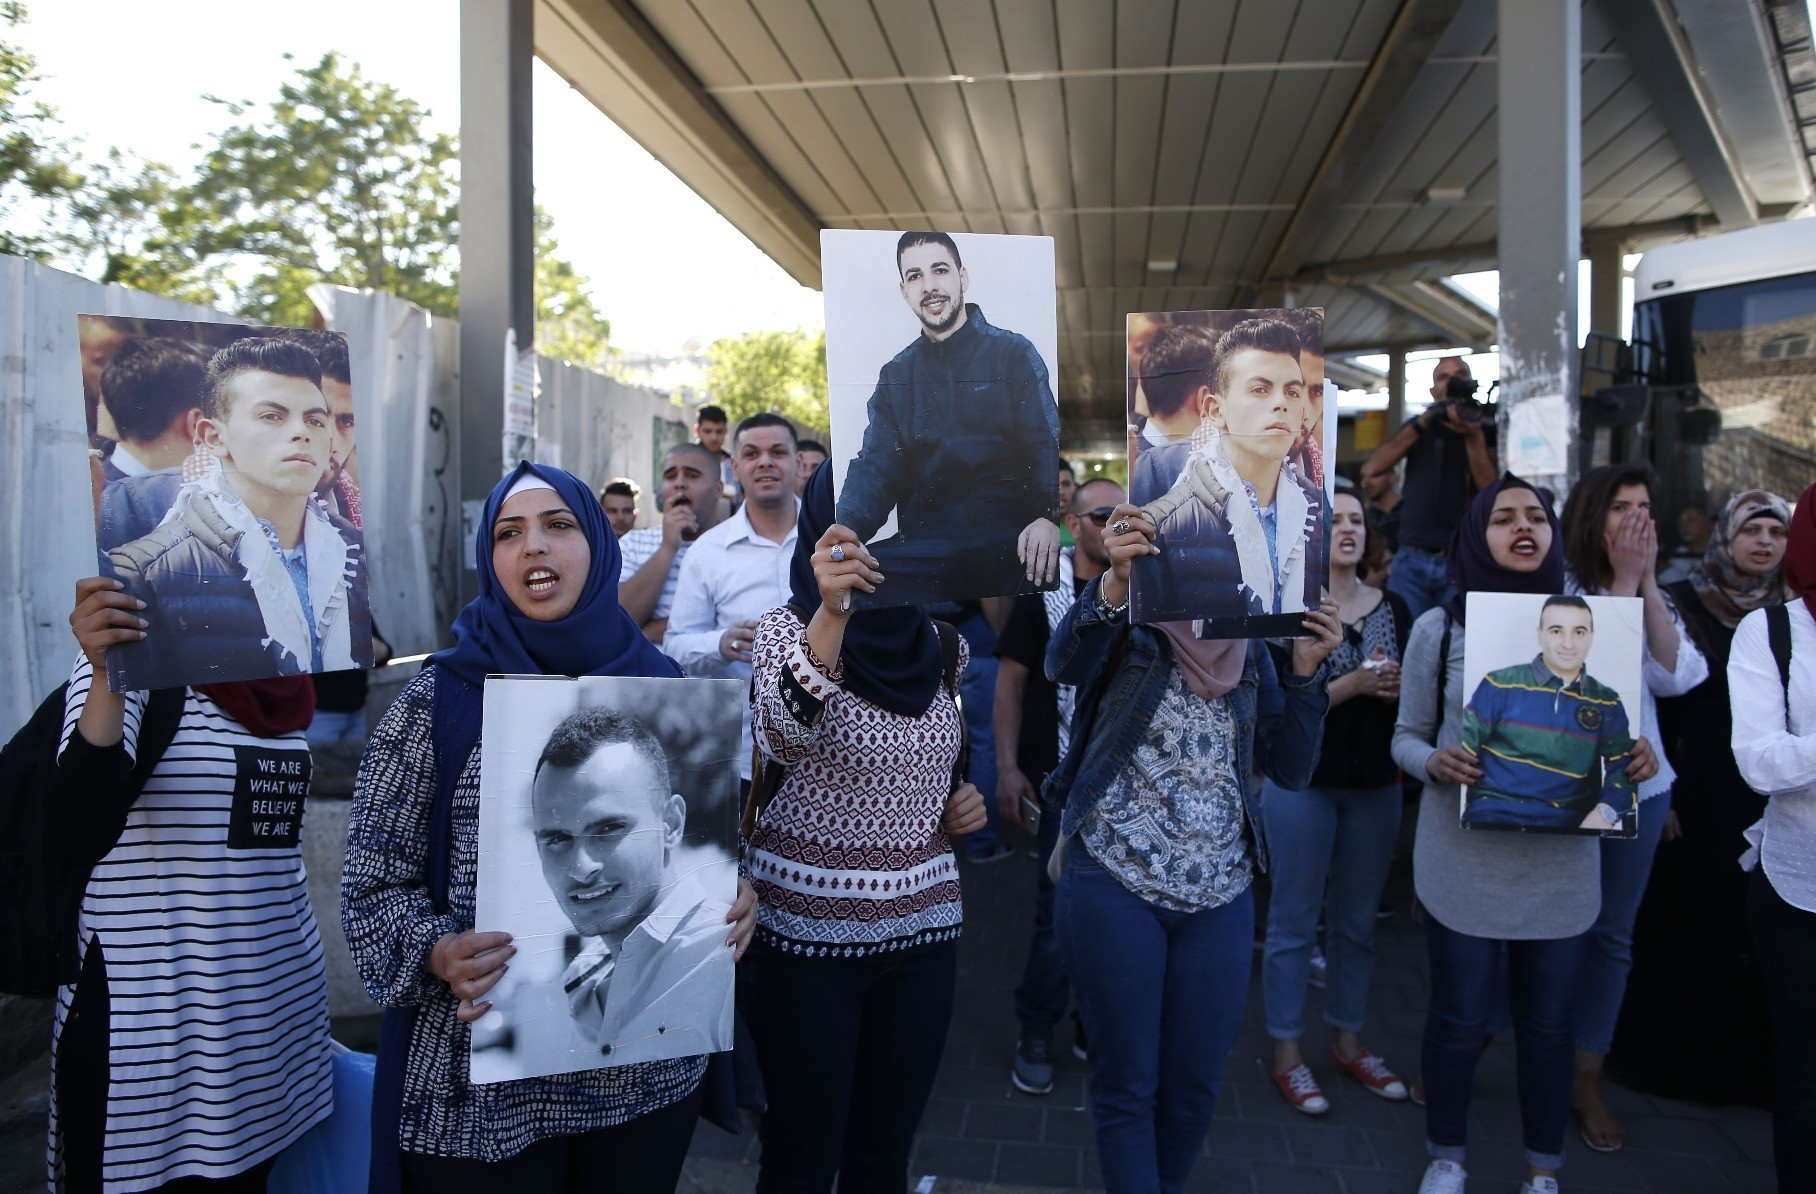 Families of Palestinians imprisoned in Israeli jails demonstrate in Jerusalem's Old City on Saturday in support of hundreds of Palestinian prisoners on a hunger strike.